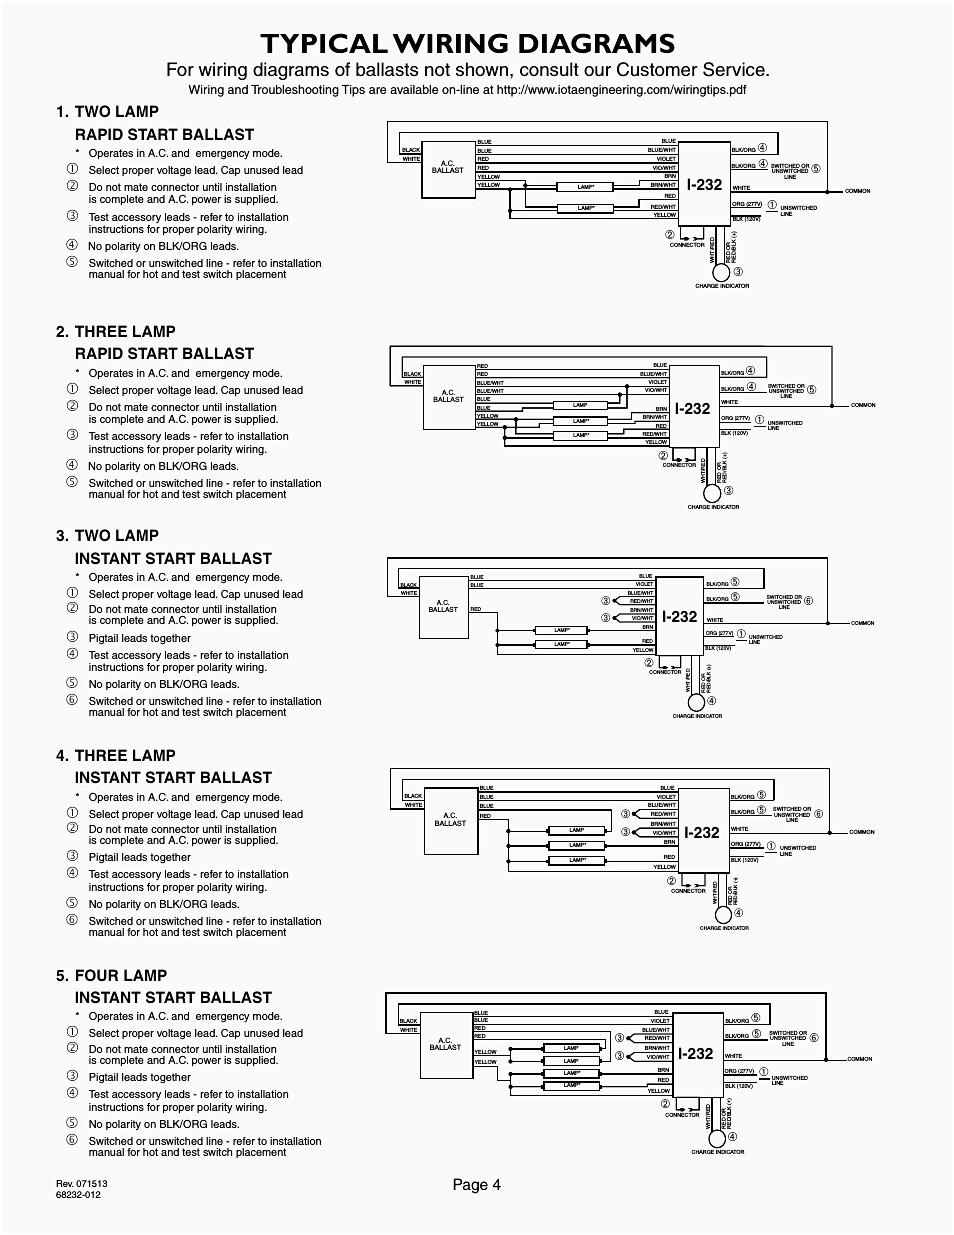 hight resolution of icn 4s54 90c 2ls g wiring diagram sample wiring fluorescent light fixtures 4 lamp t5 wiring diagram